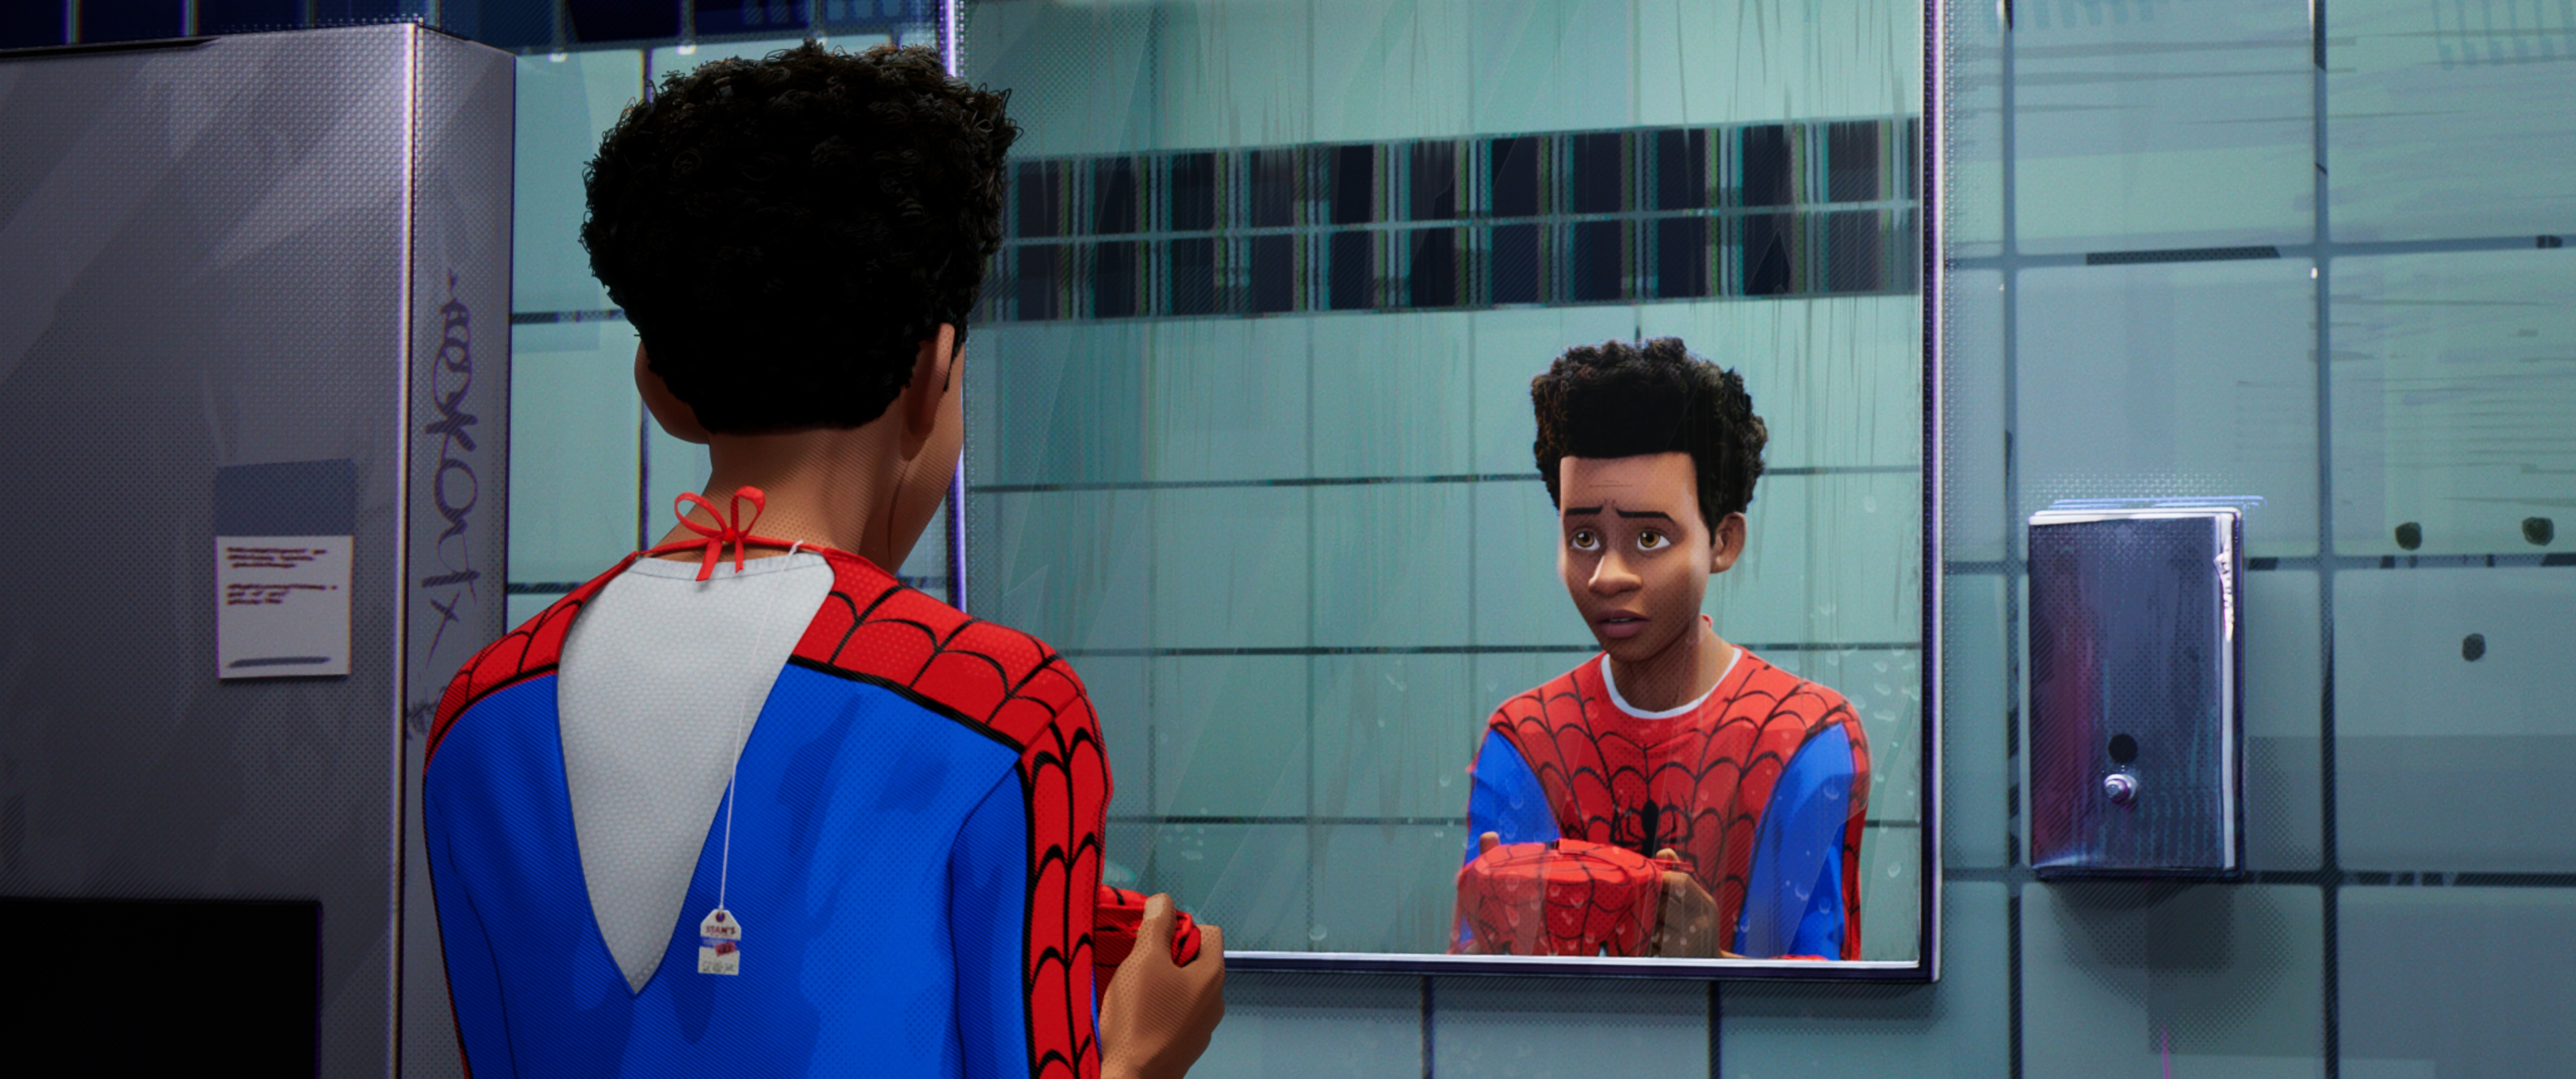 Why the Spanish Dialogue in 'Spider-Man: Into the Spider-Verse' Doesn't Have Subtitles